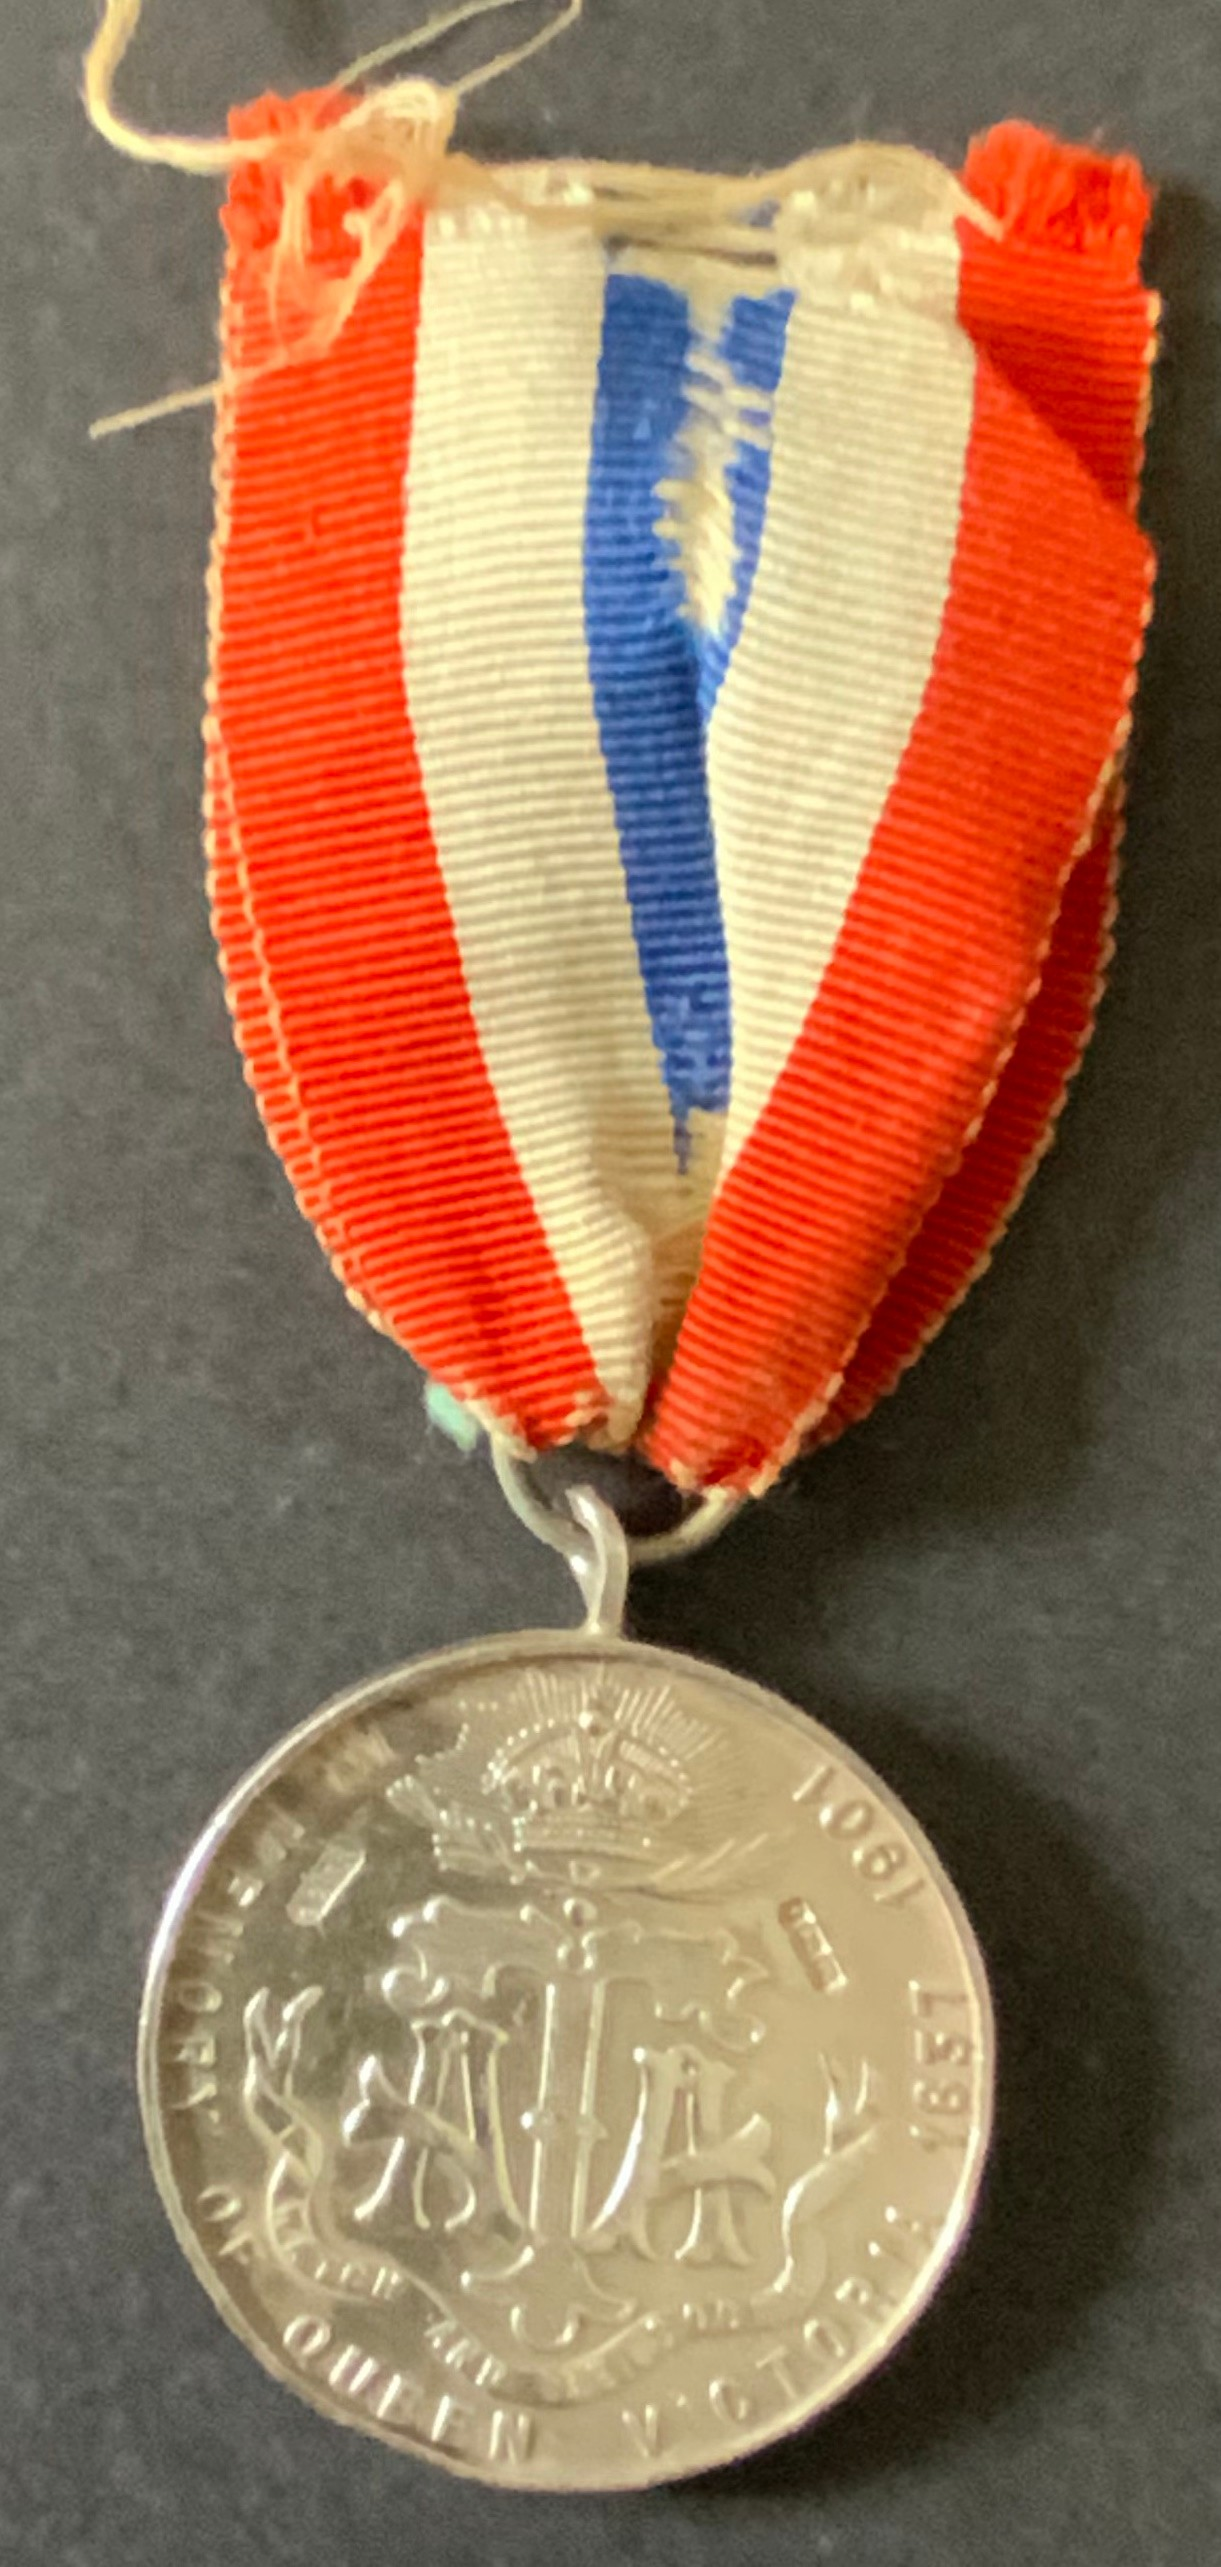 HALLMARKED SILVER MEDAL OF QUEEN VICTORIA EMPRESS OF INDIA (1837-1901) - Image 2 of 2